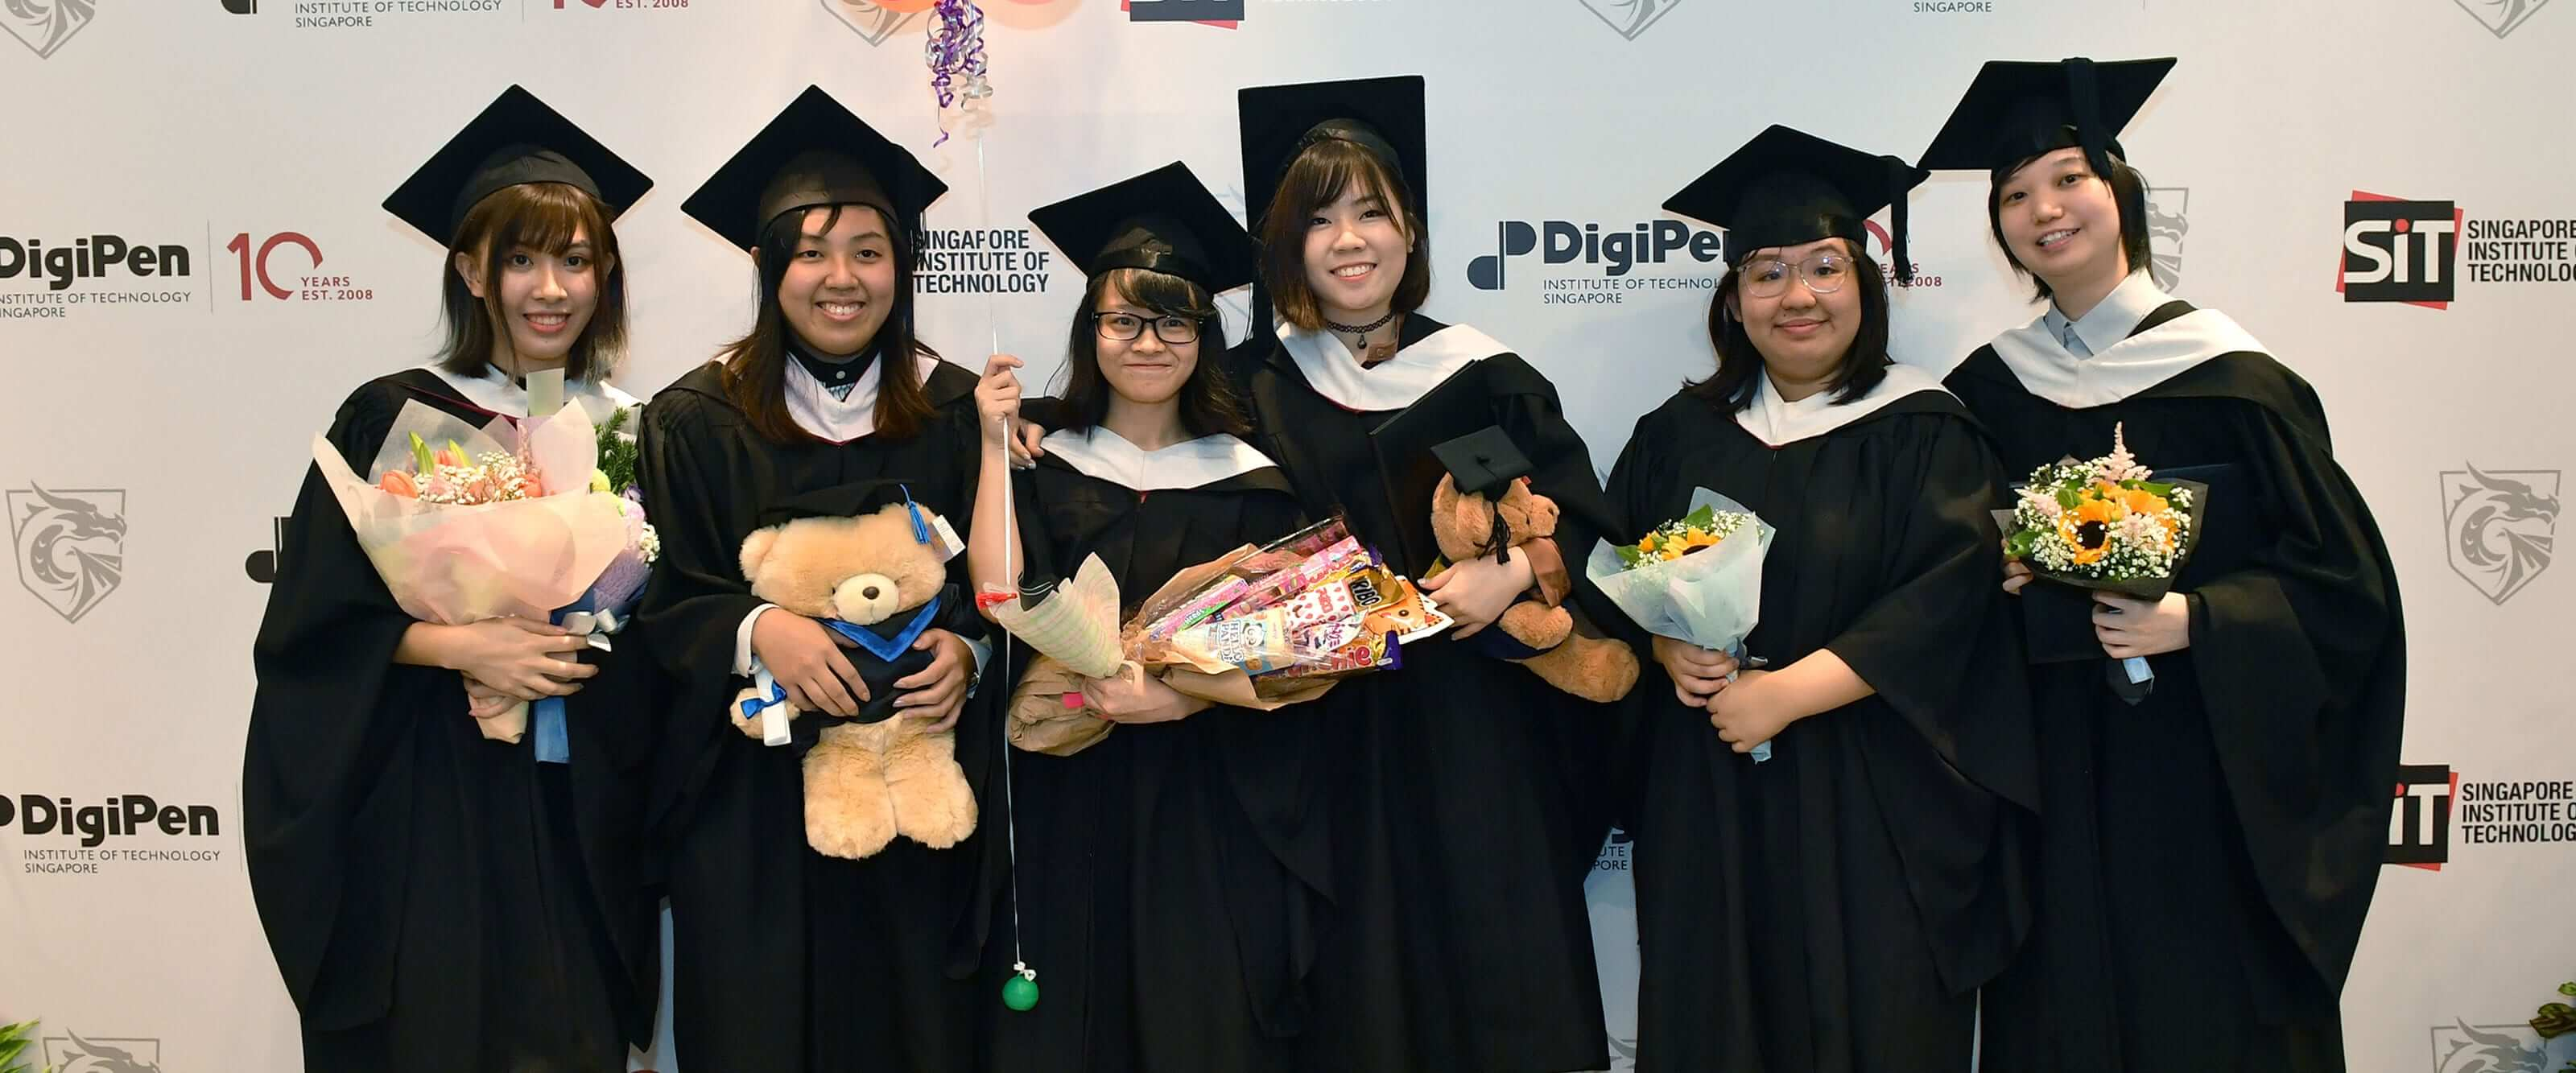 Recent college graduates in black graduation gowns and mortarboards pose for a photo holding flowers and stuffed animals.